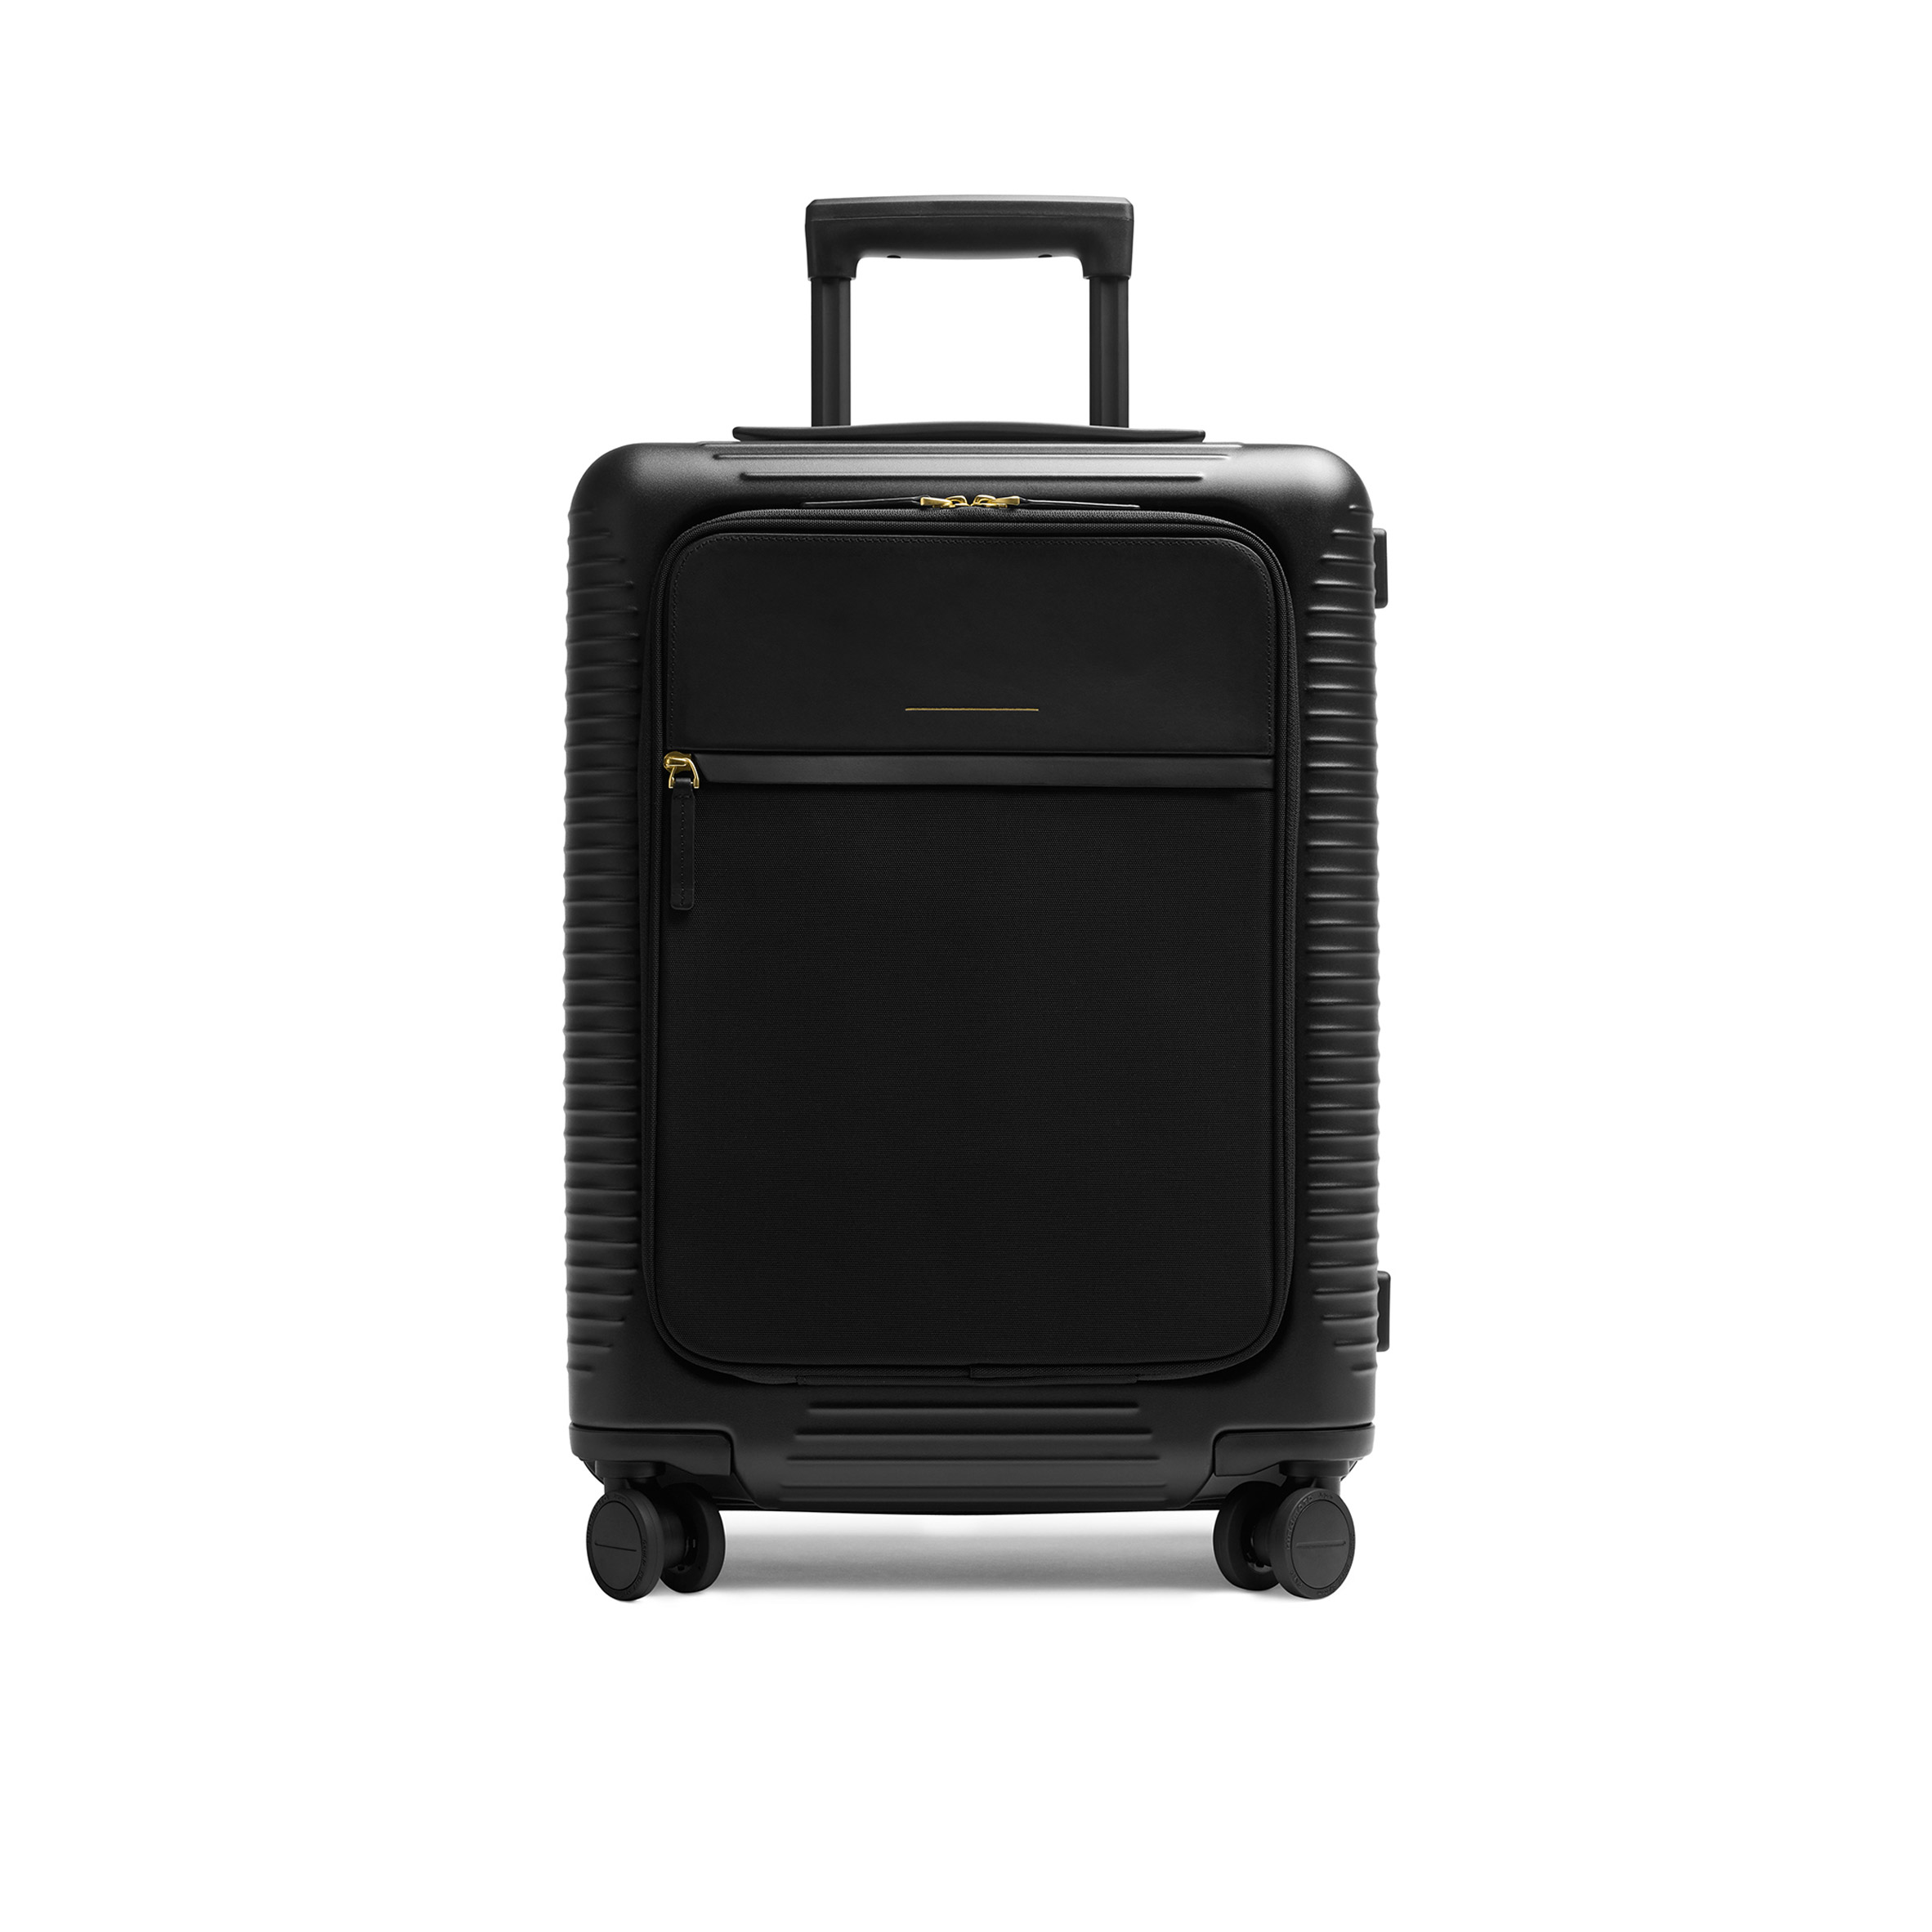 Horizn's smart luggage is designed to serve the digital lifestyles of modern travellers